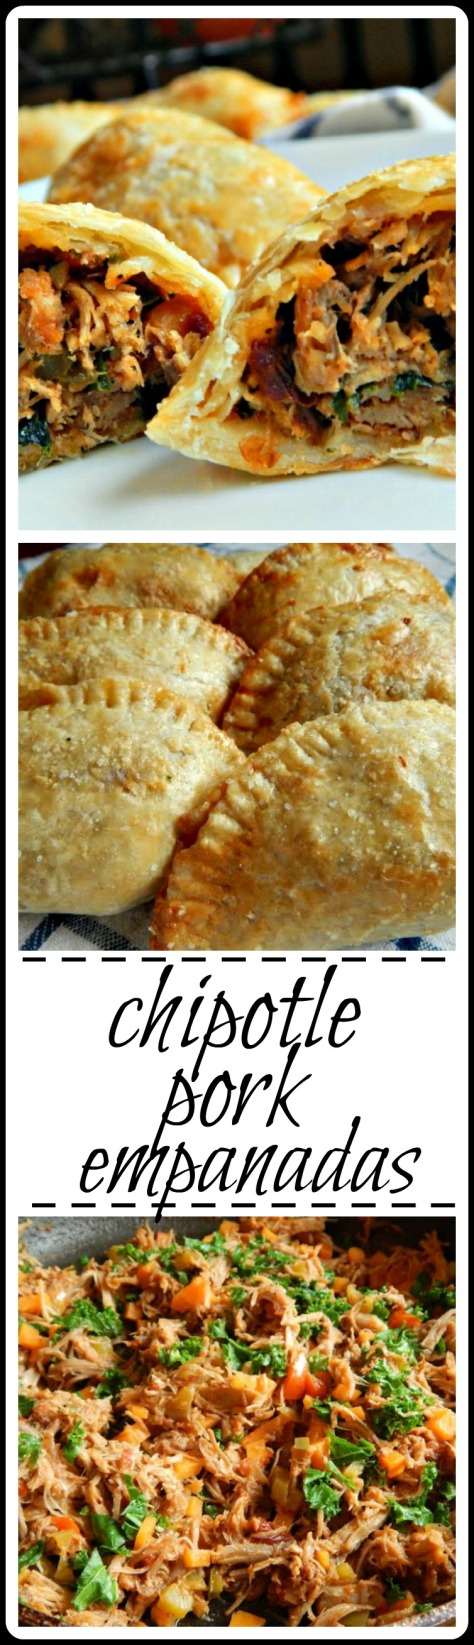 Chipotle Pork Empanadas: Made from pulled pork, a dash of sweet potato & kale and chipotle! Fantastic & easier than you'd think.